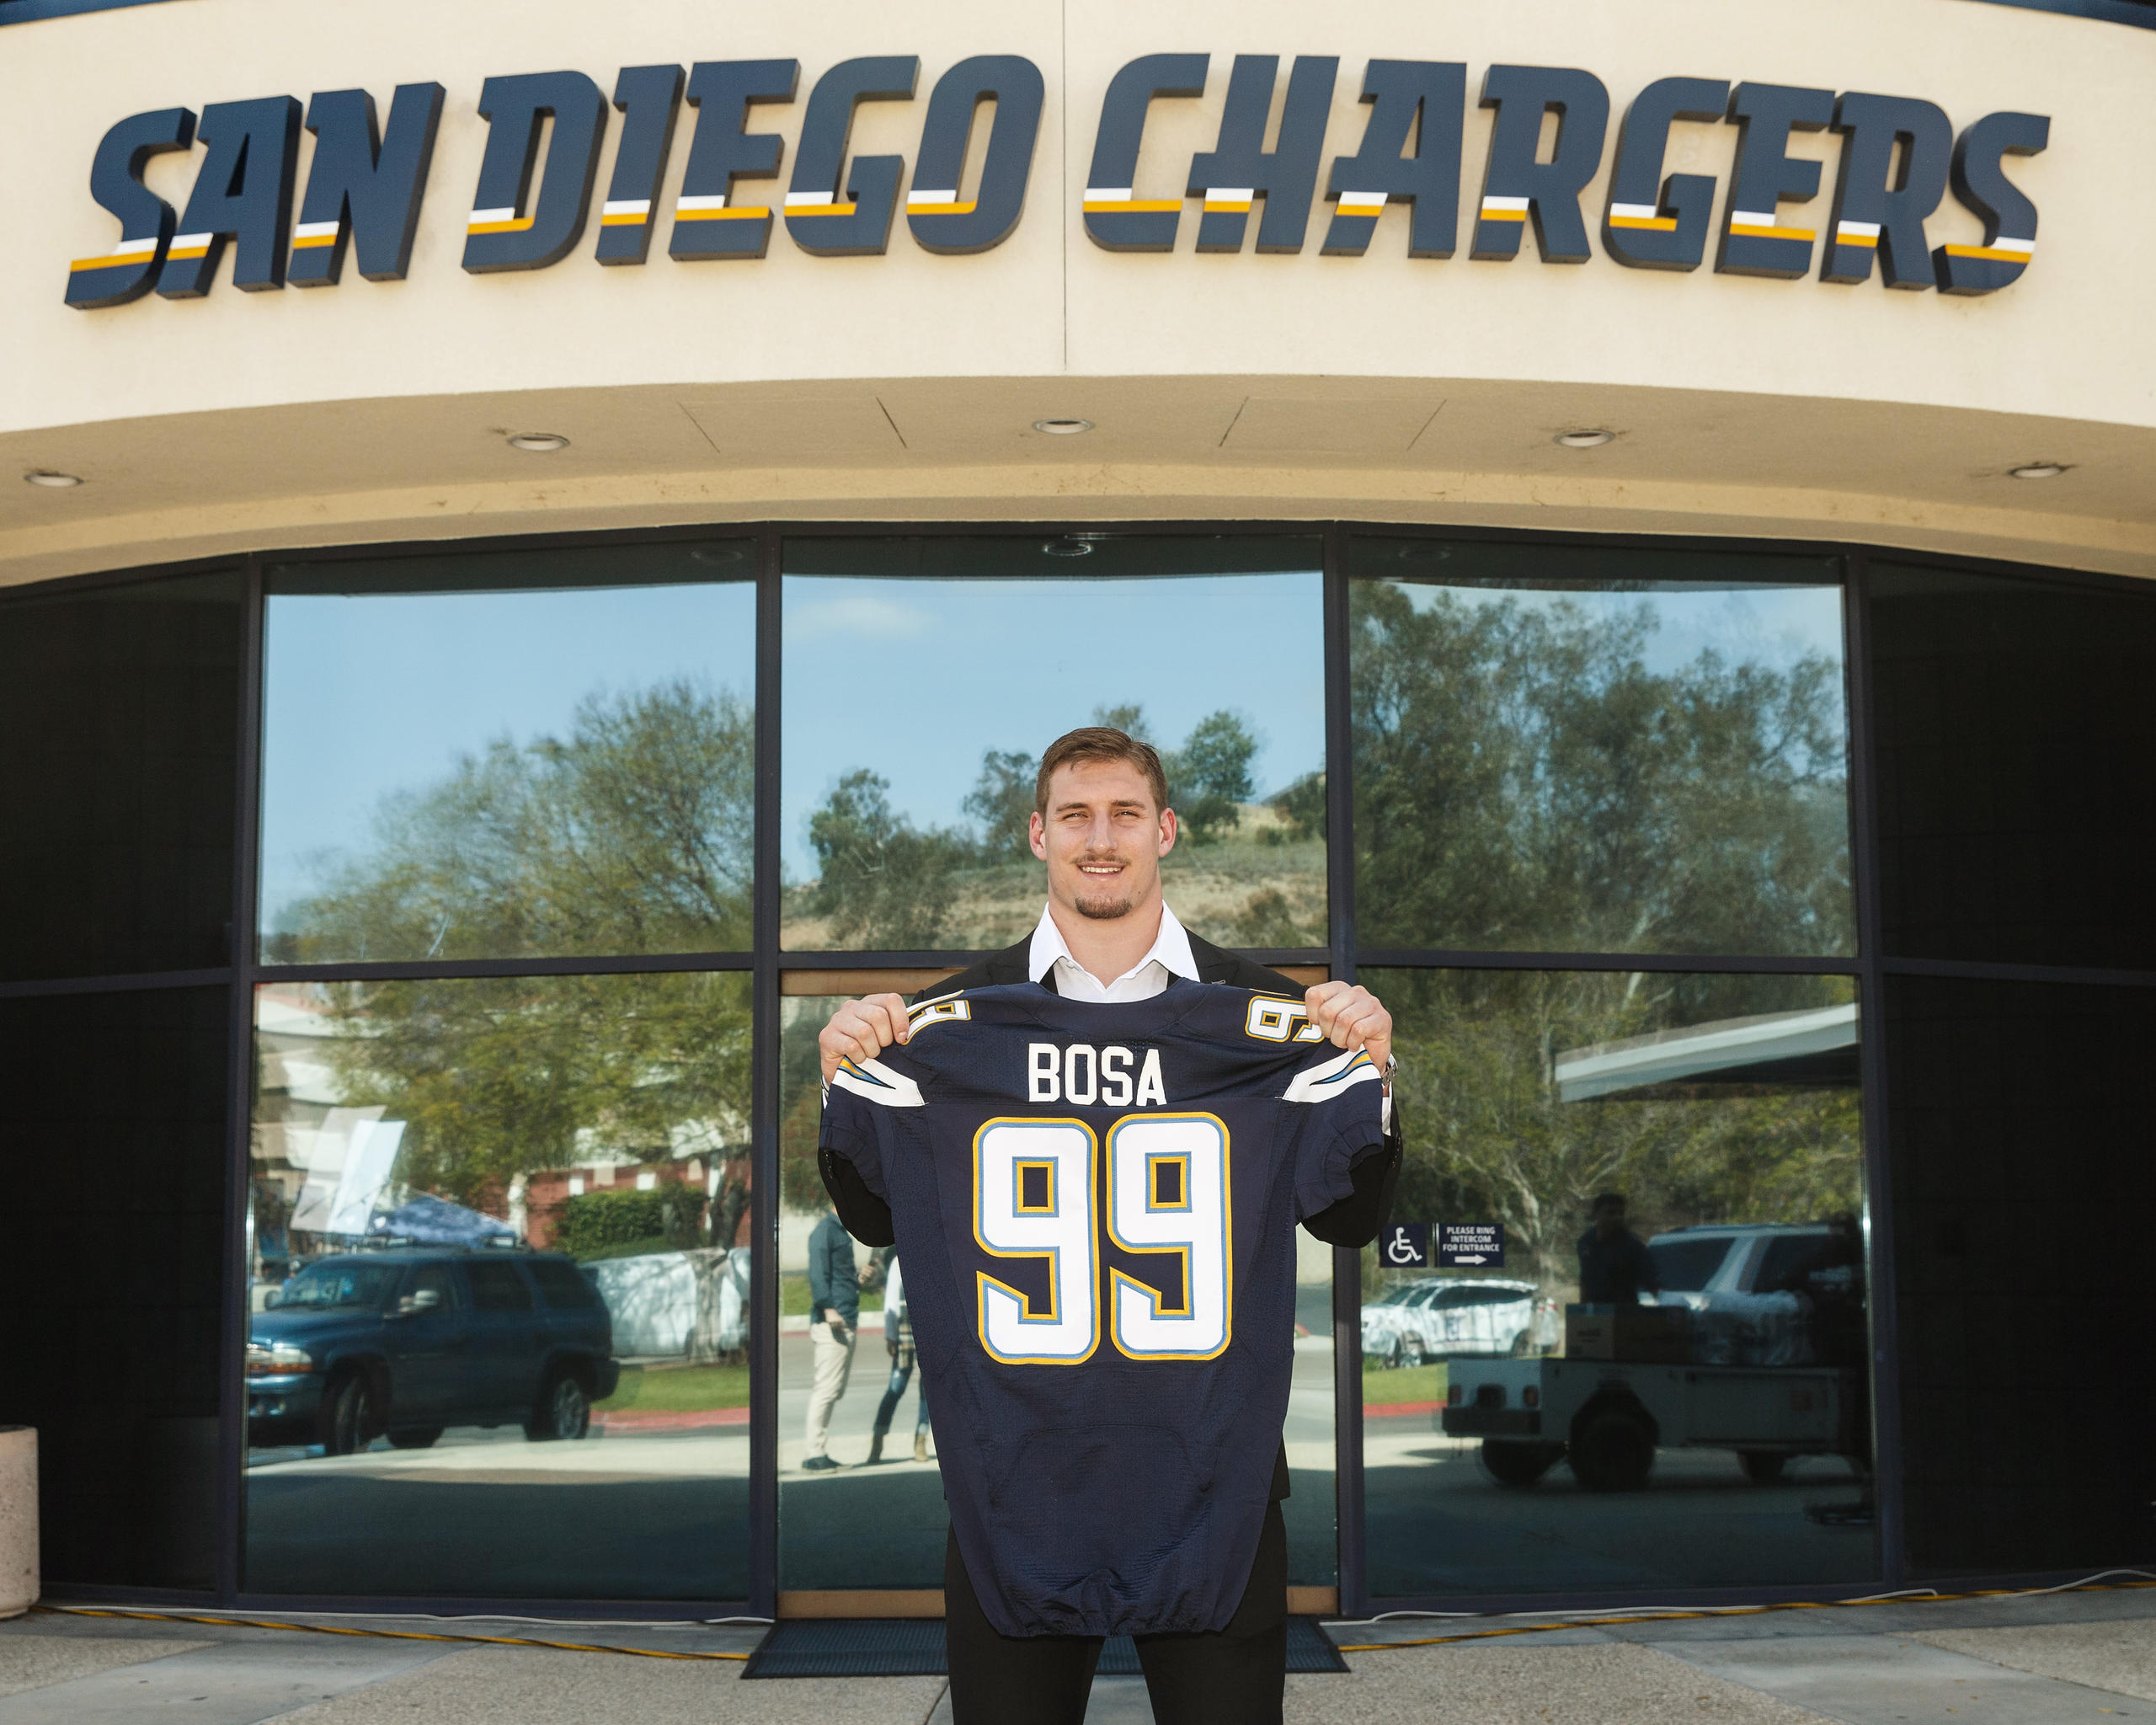 Bosa and Chargers strike a deal